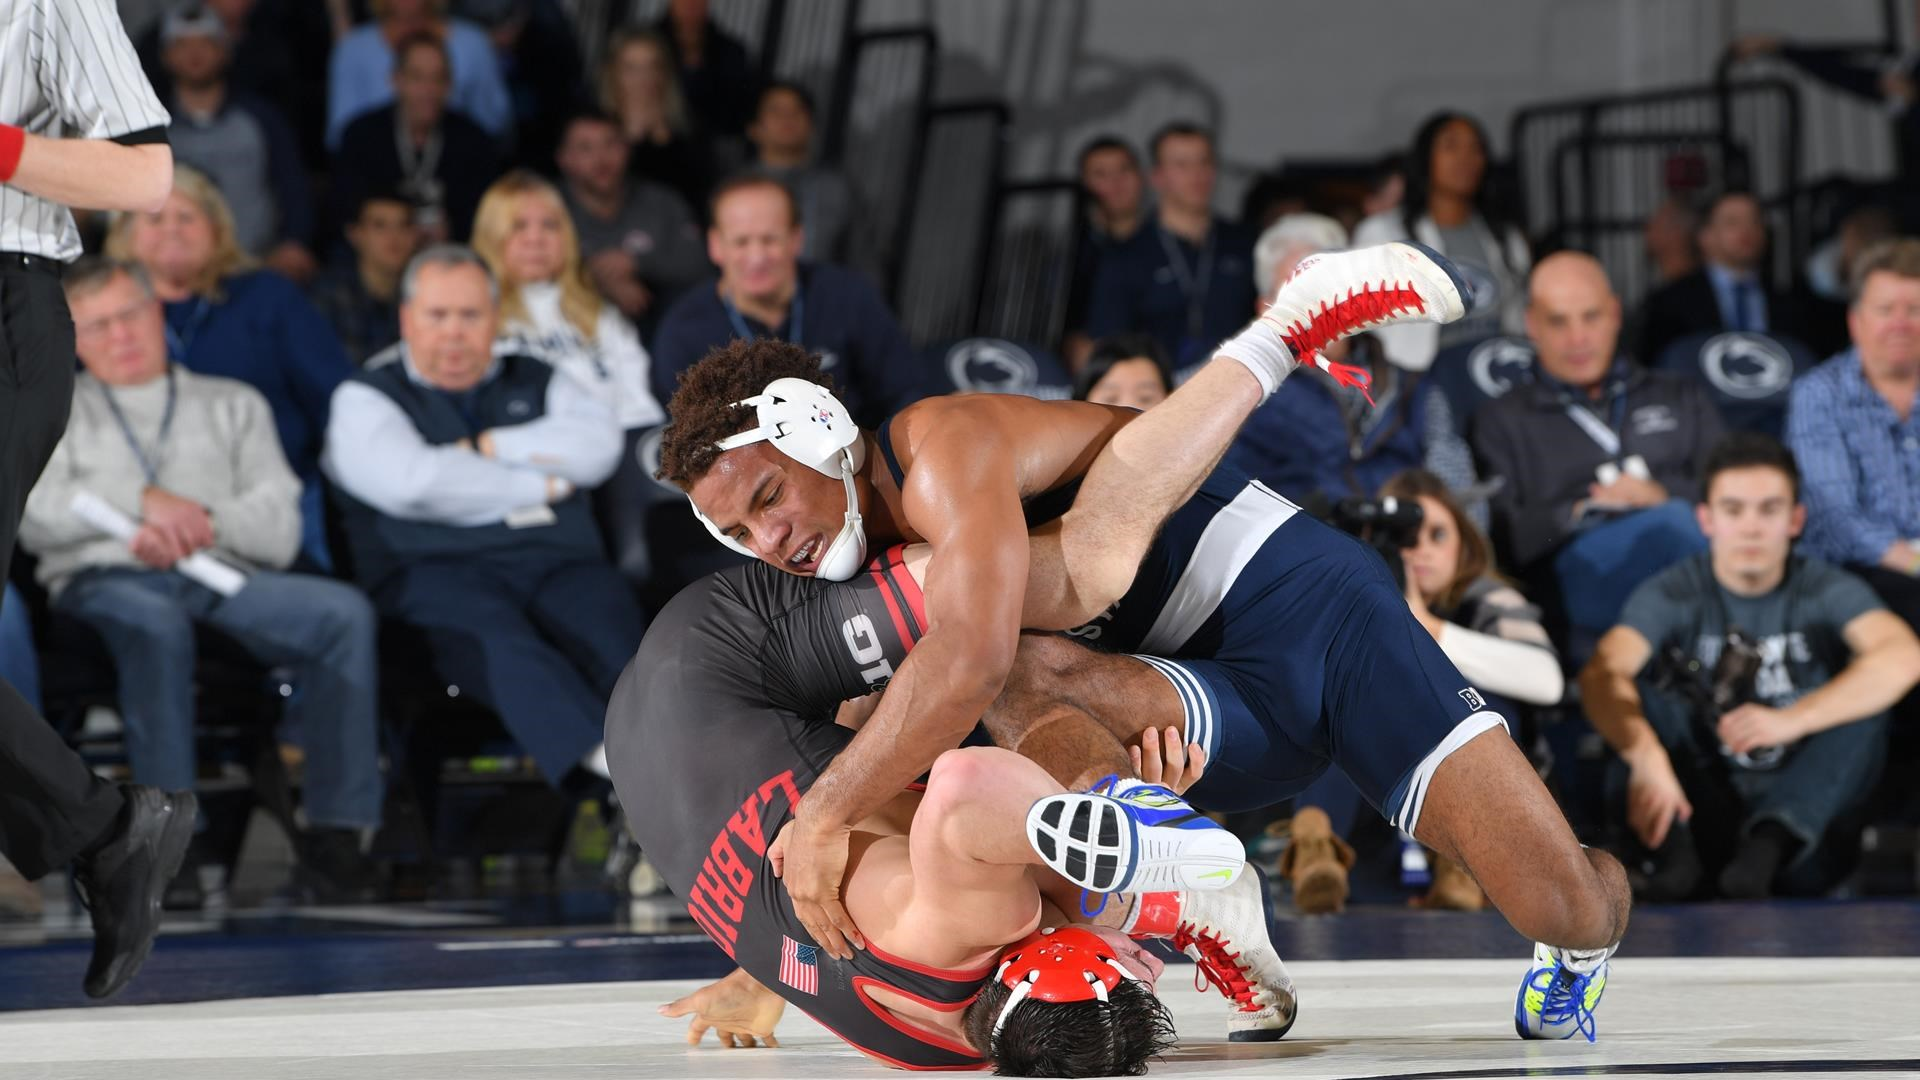 Mark Hall   Wrestling   Penn State University Athletics 1920x1080